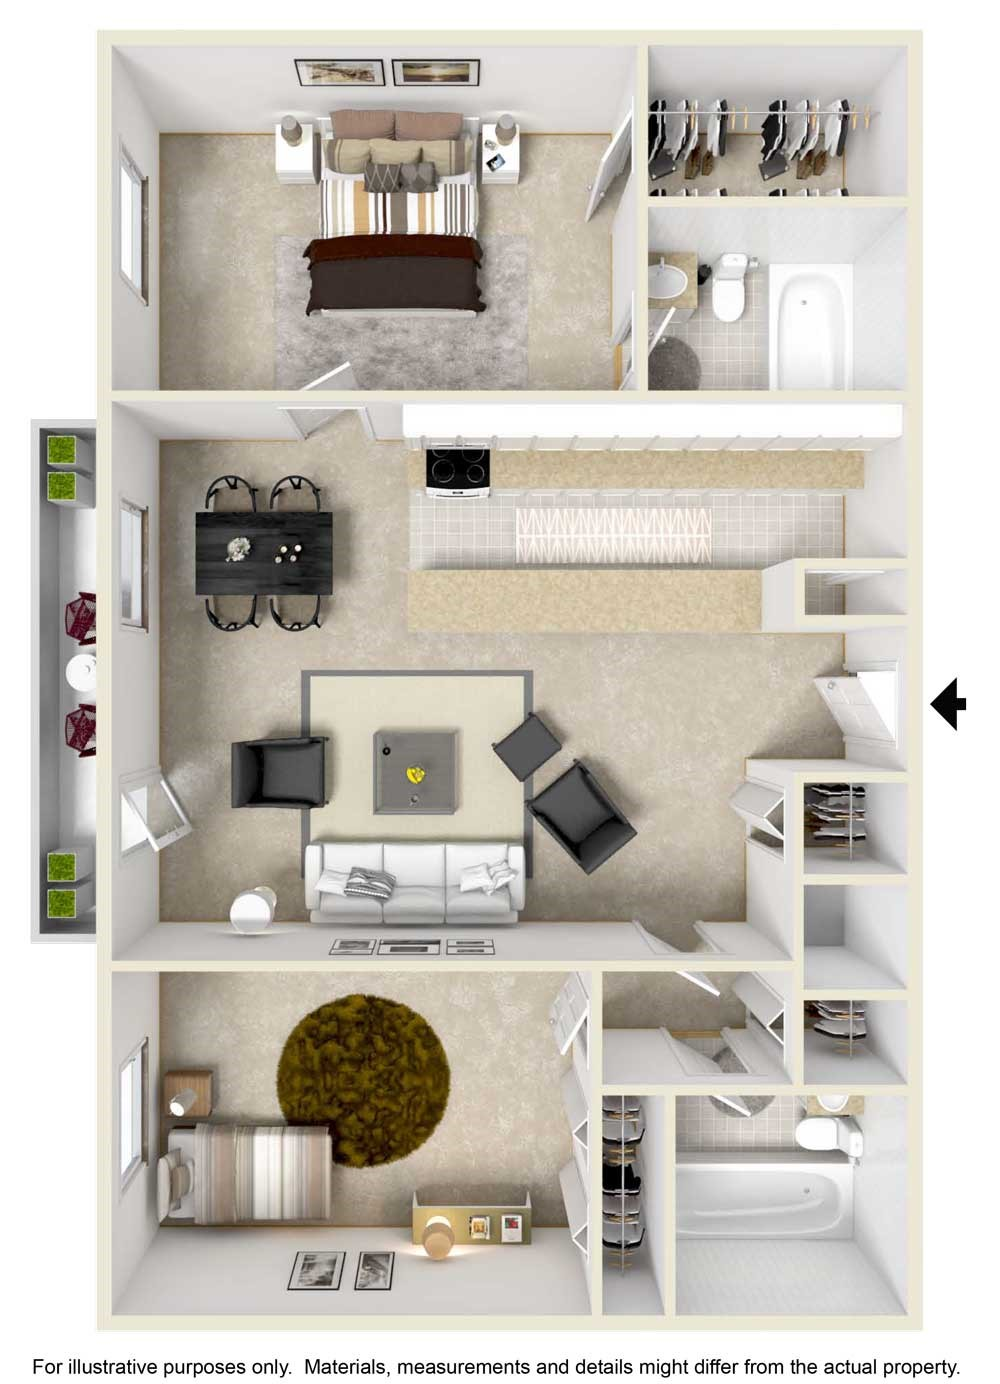 2 Bedroom / 2 Bathroom Floorplan